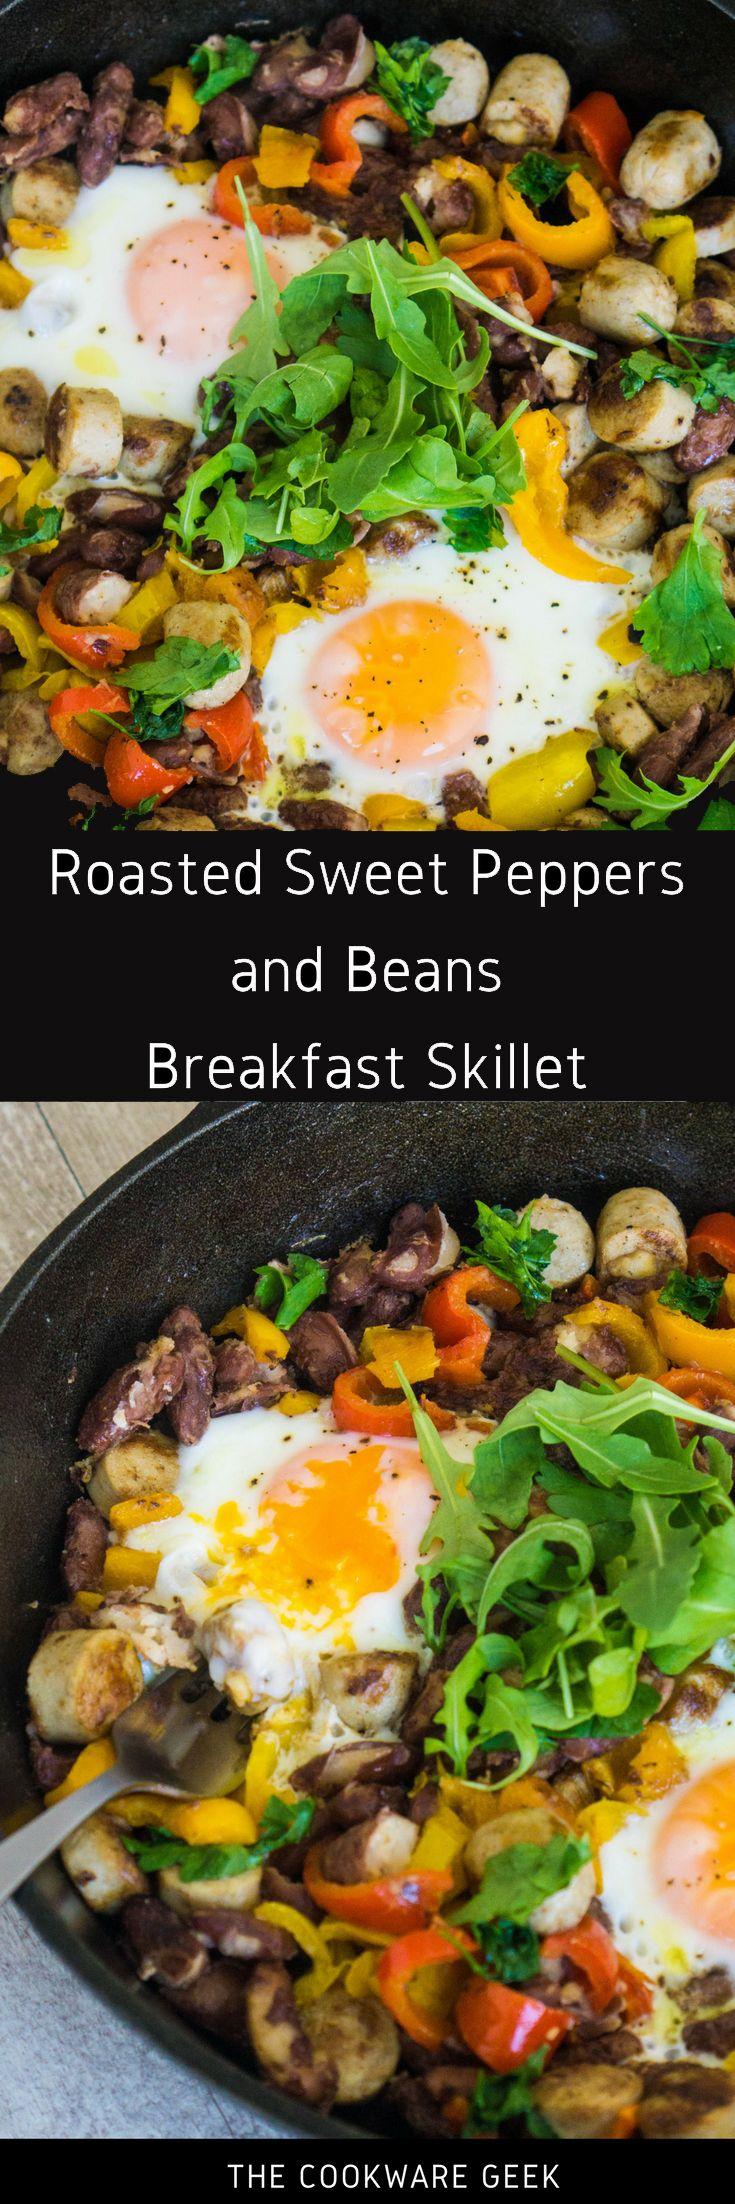 Roasted Sweet Peppers and Beans Breakfast Skillet | The Cookware Geek